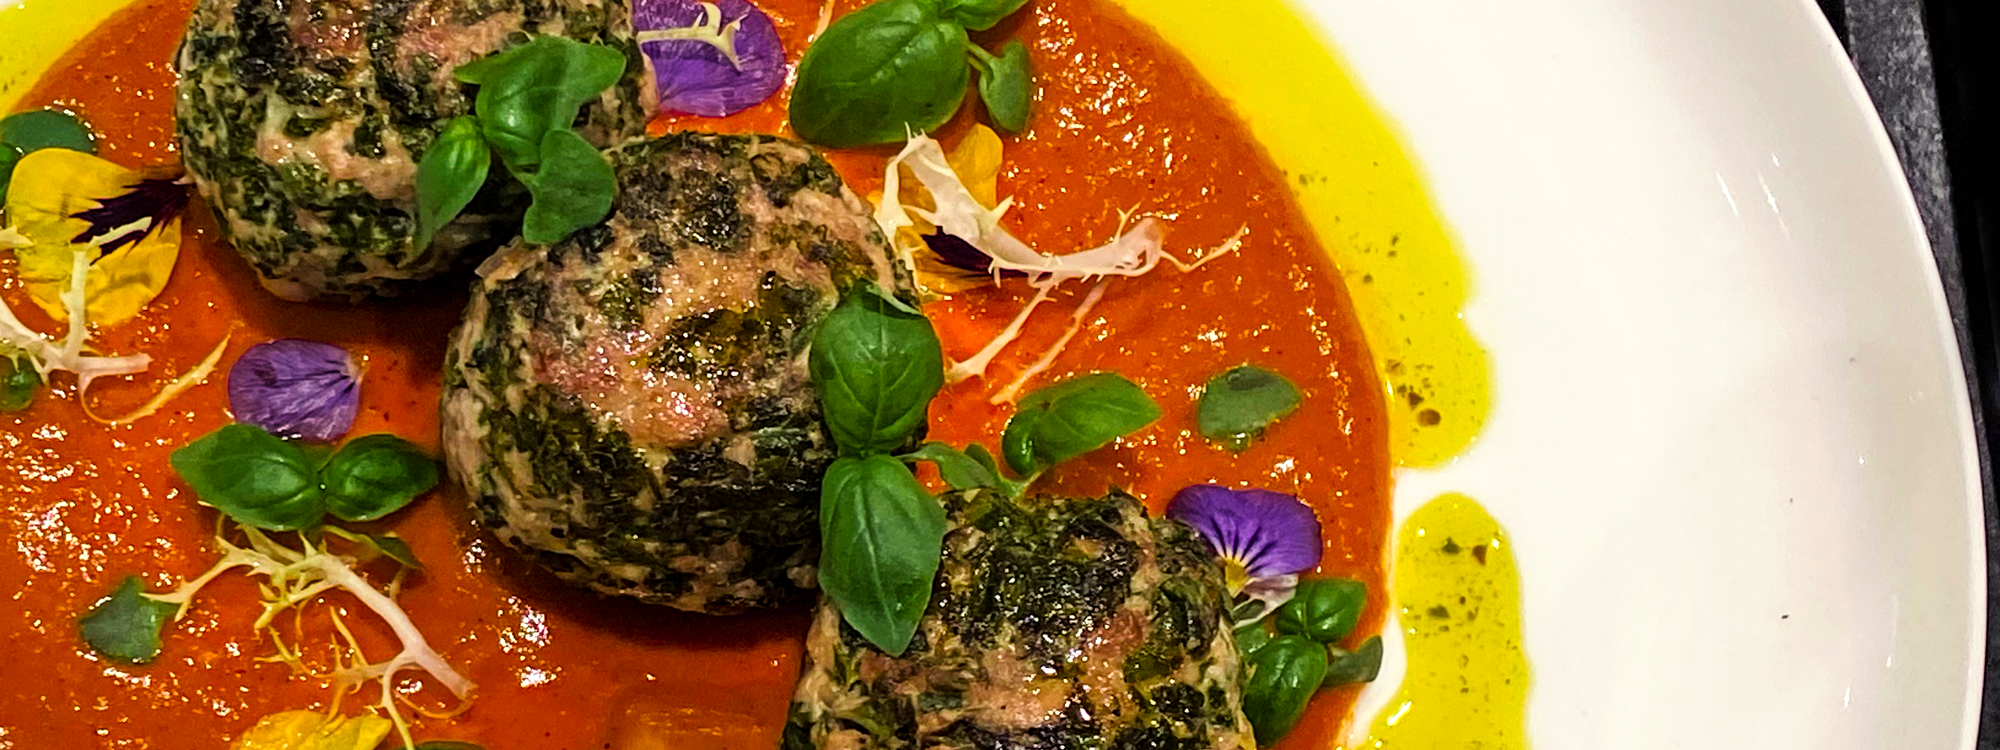 Chicken Kale Meatballs with Cannabis Infused Cherry Tomato Sauce